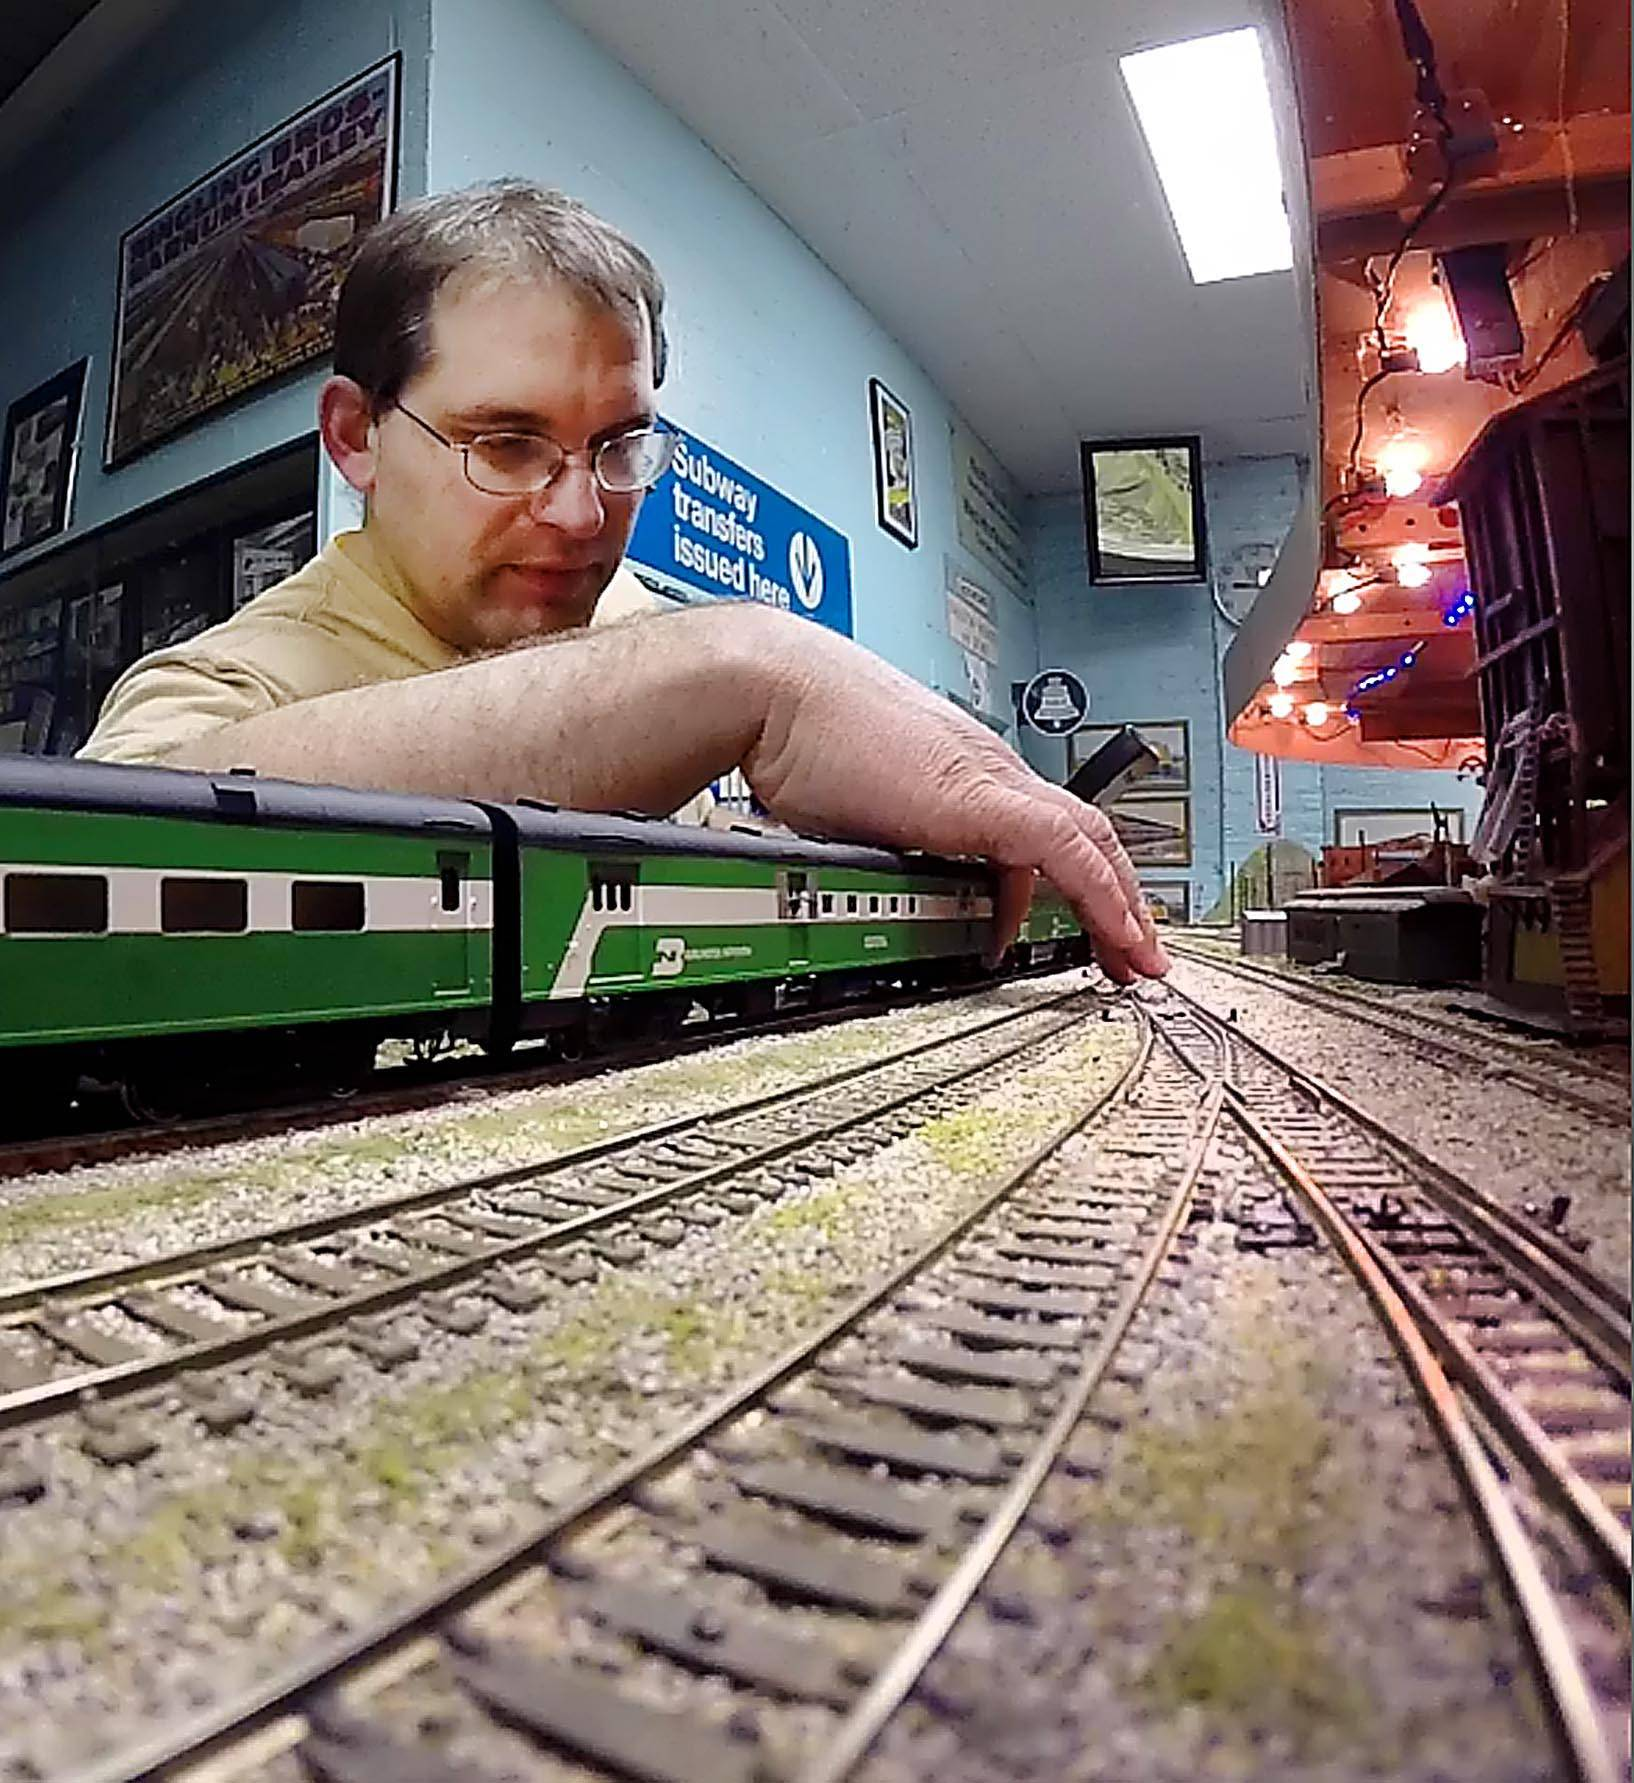 Jim Pechous adjusts his HO scale model train at the Valley Model Railroad Club in South Elgin. Pechous, 31, of Lombard, has a passion for electricity and trains, and combines both as the electrical setup man for the club.